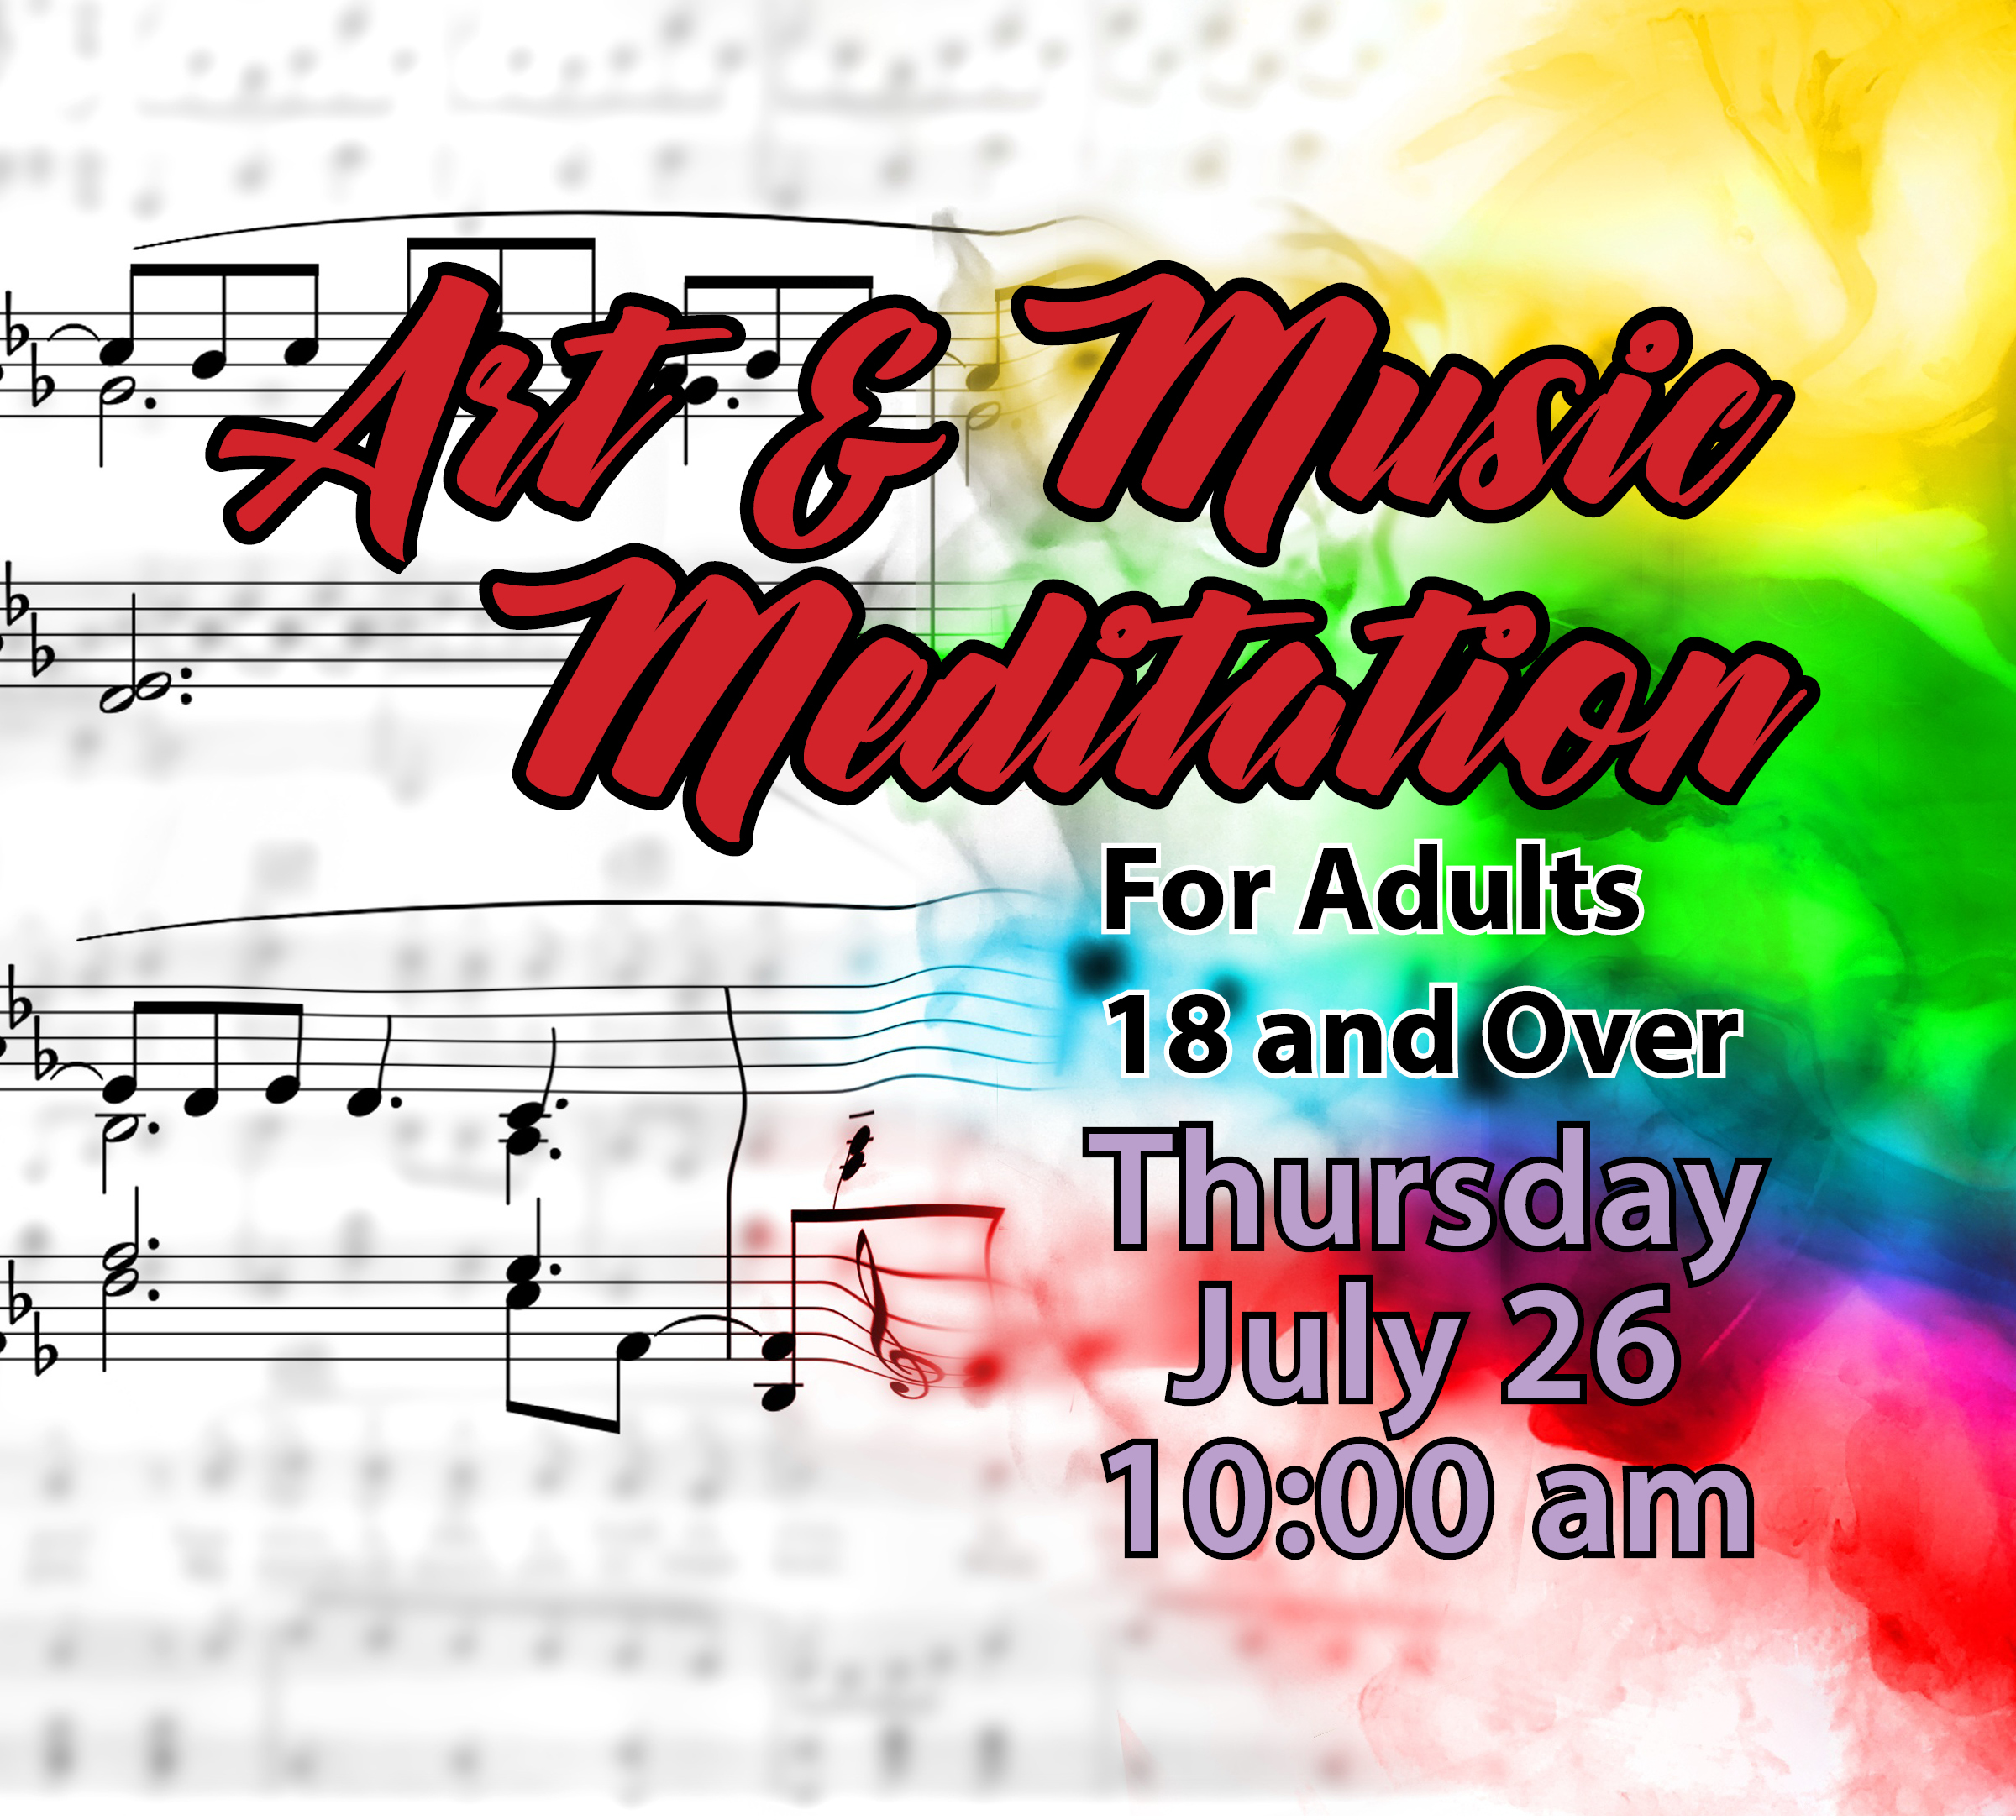 July 26 – Art, Music & Meditation for Adults